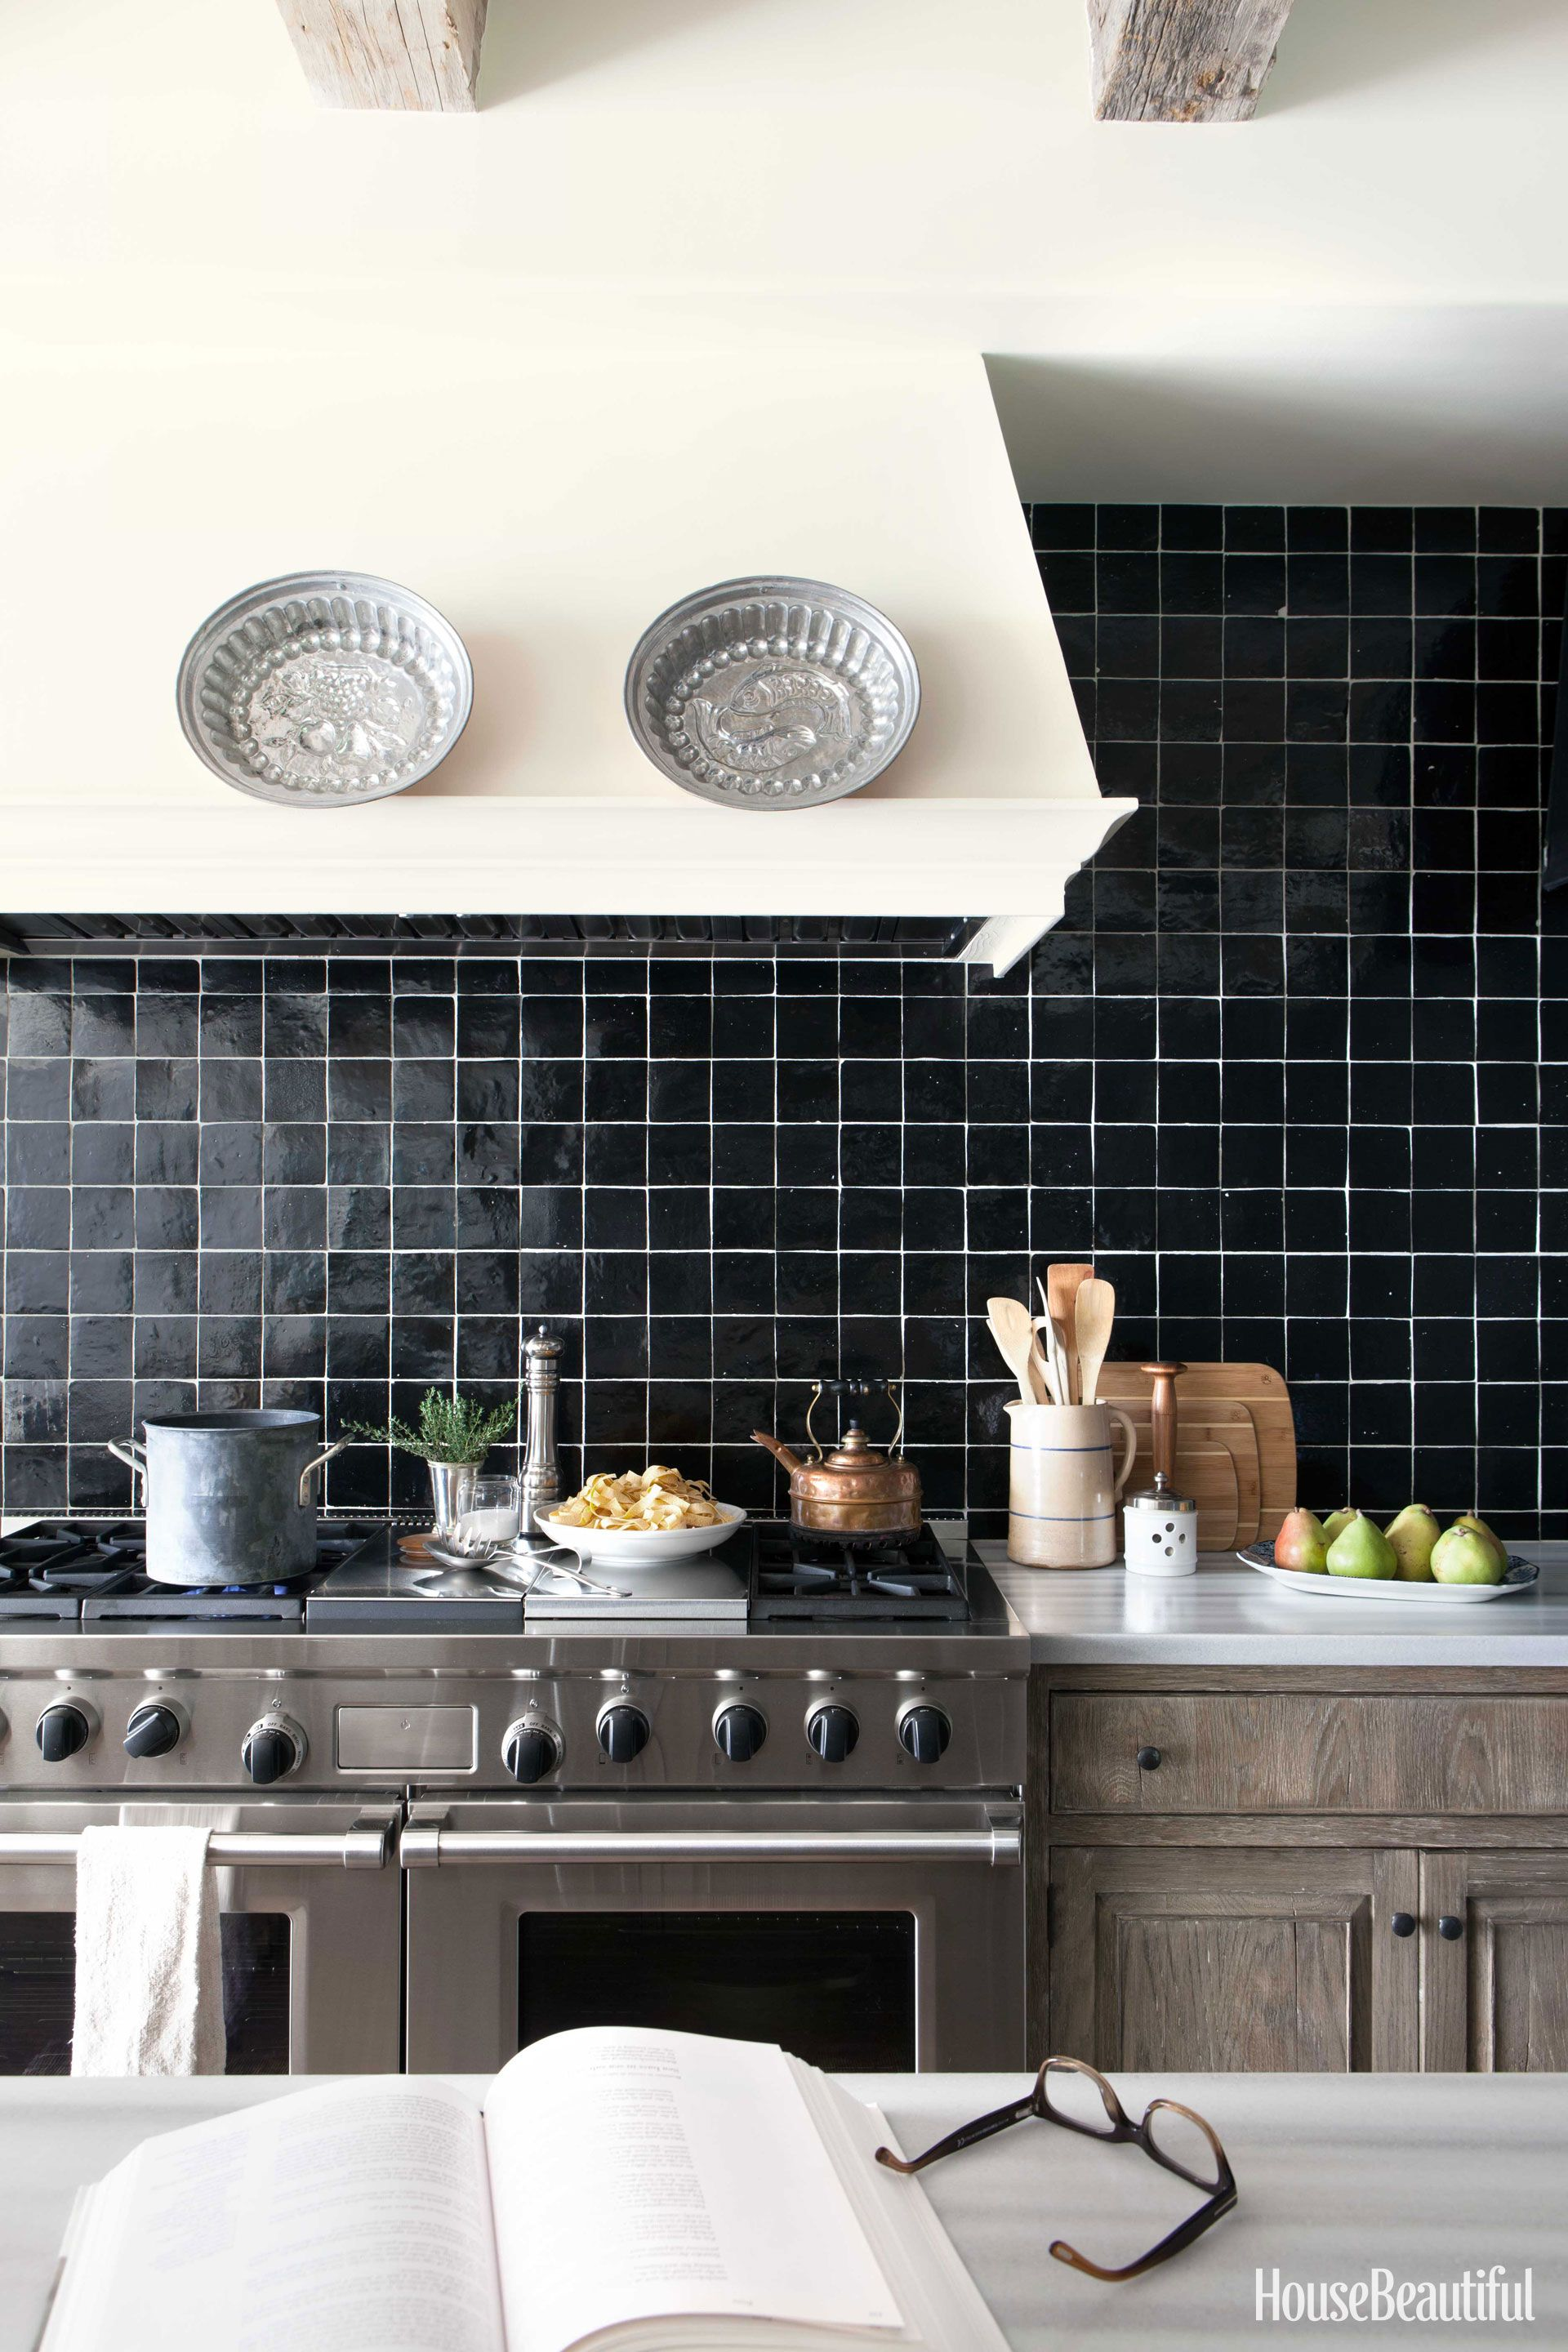 How To Decorate With Black And White Kitchen Tiles Design Black